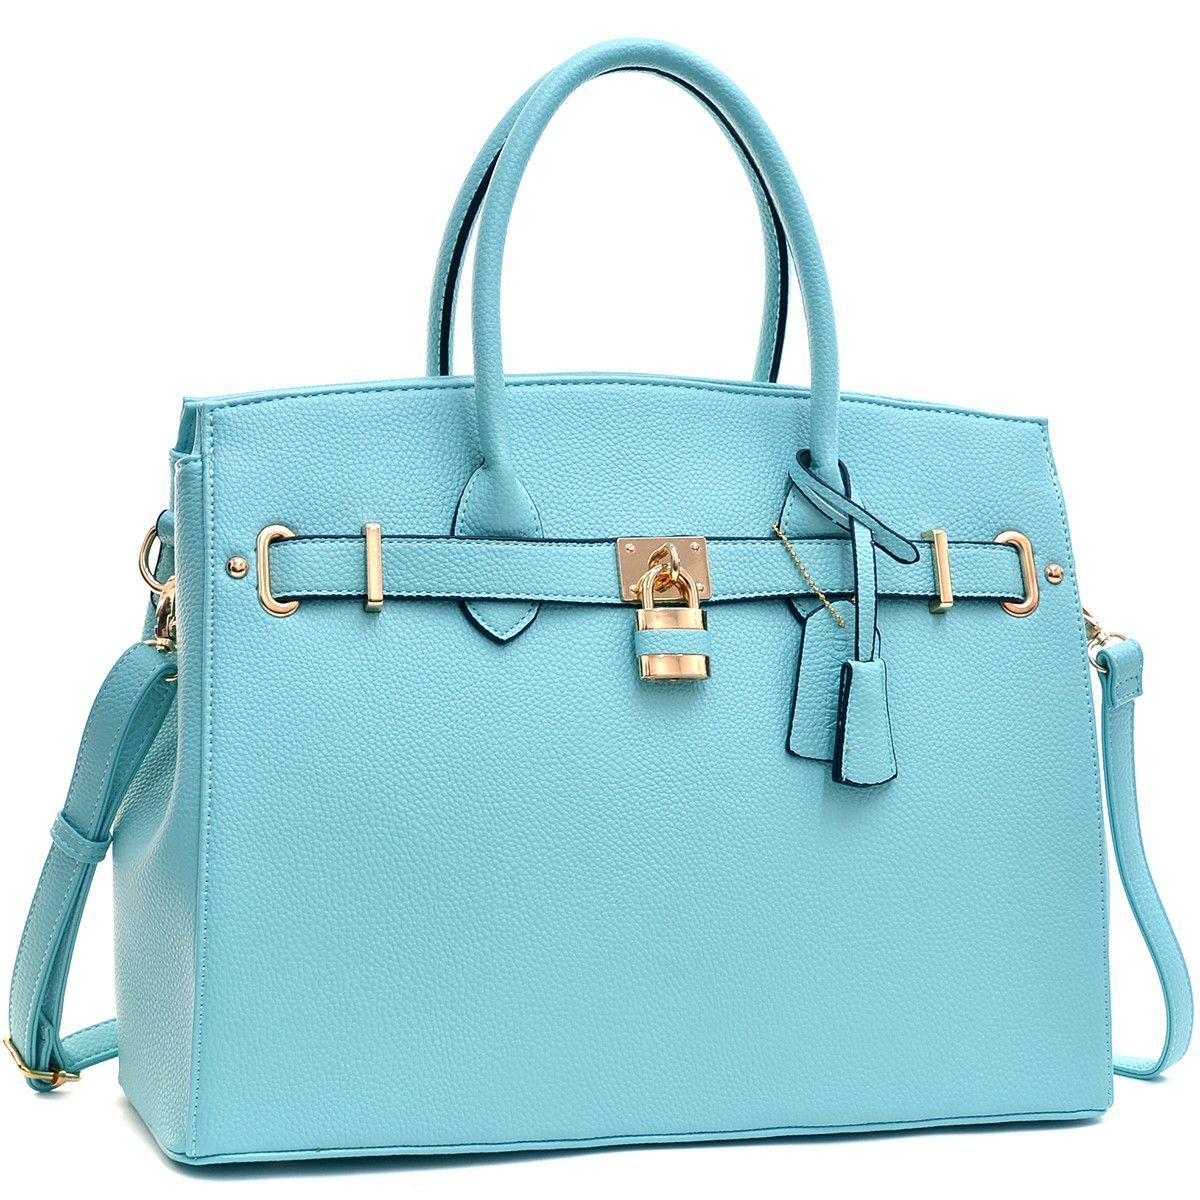 Dasein Padlock and Key Satchel with Shoulder Strap